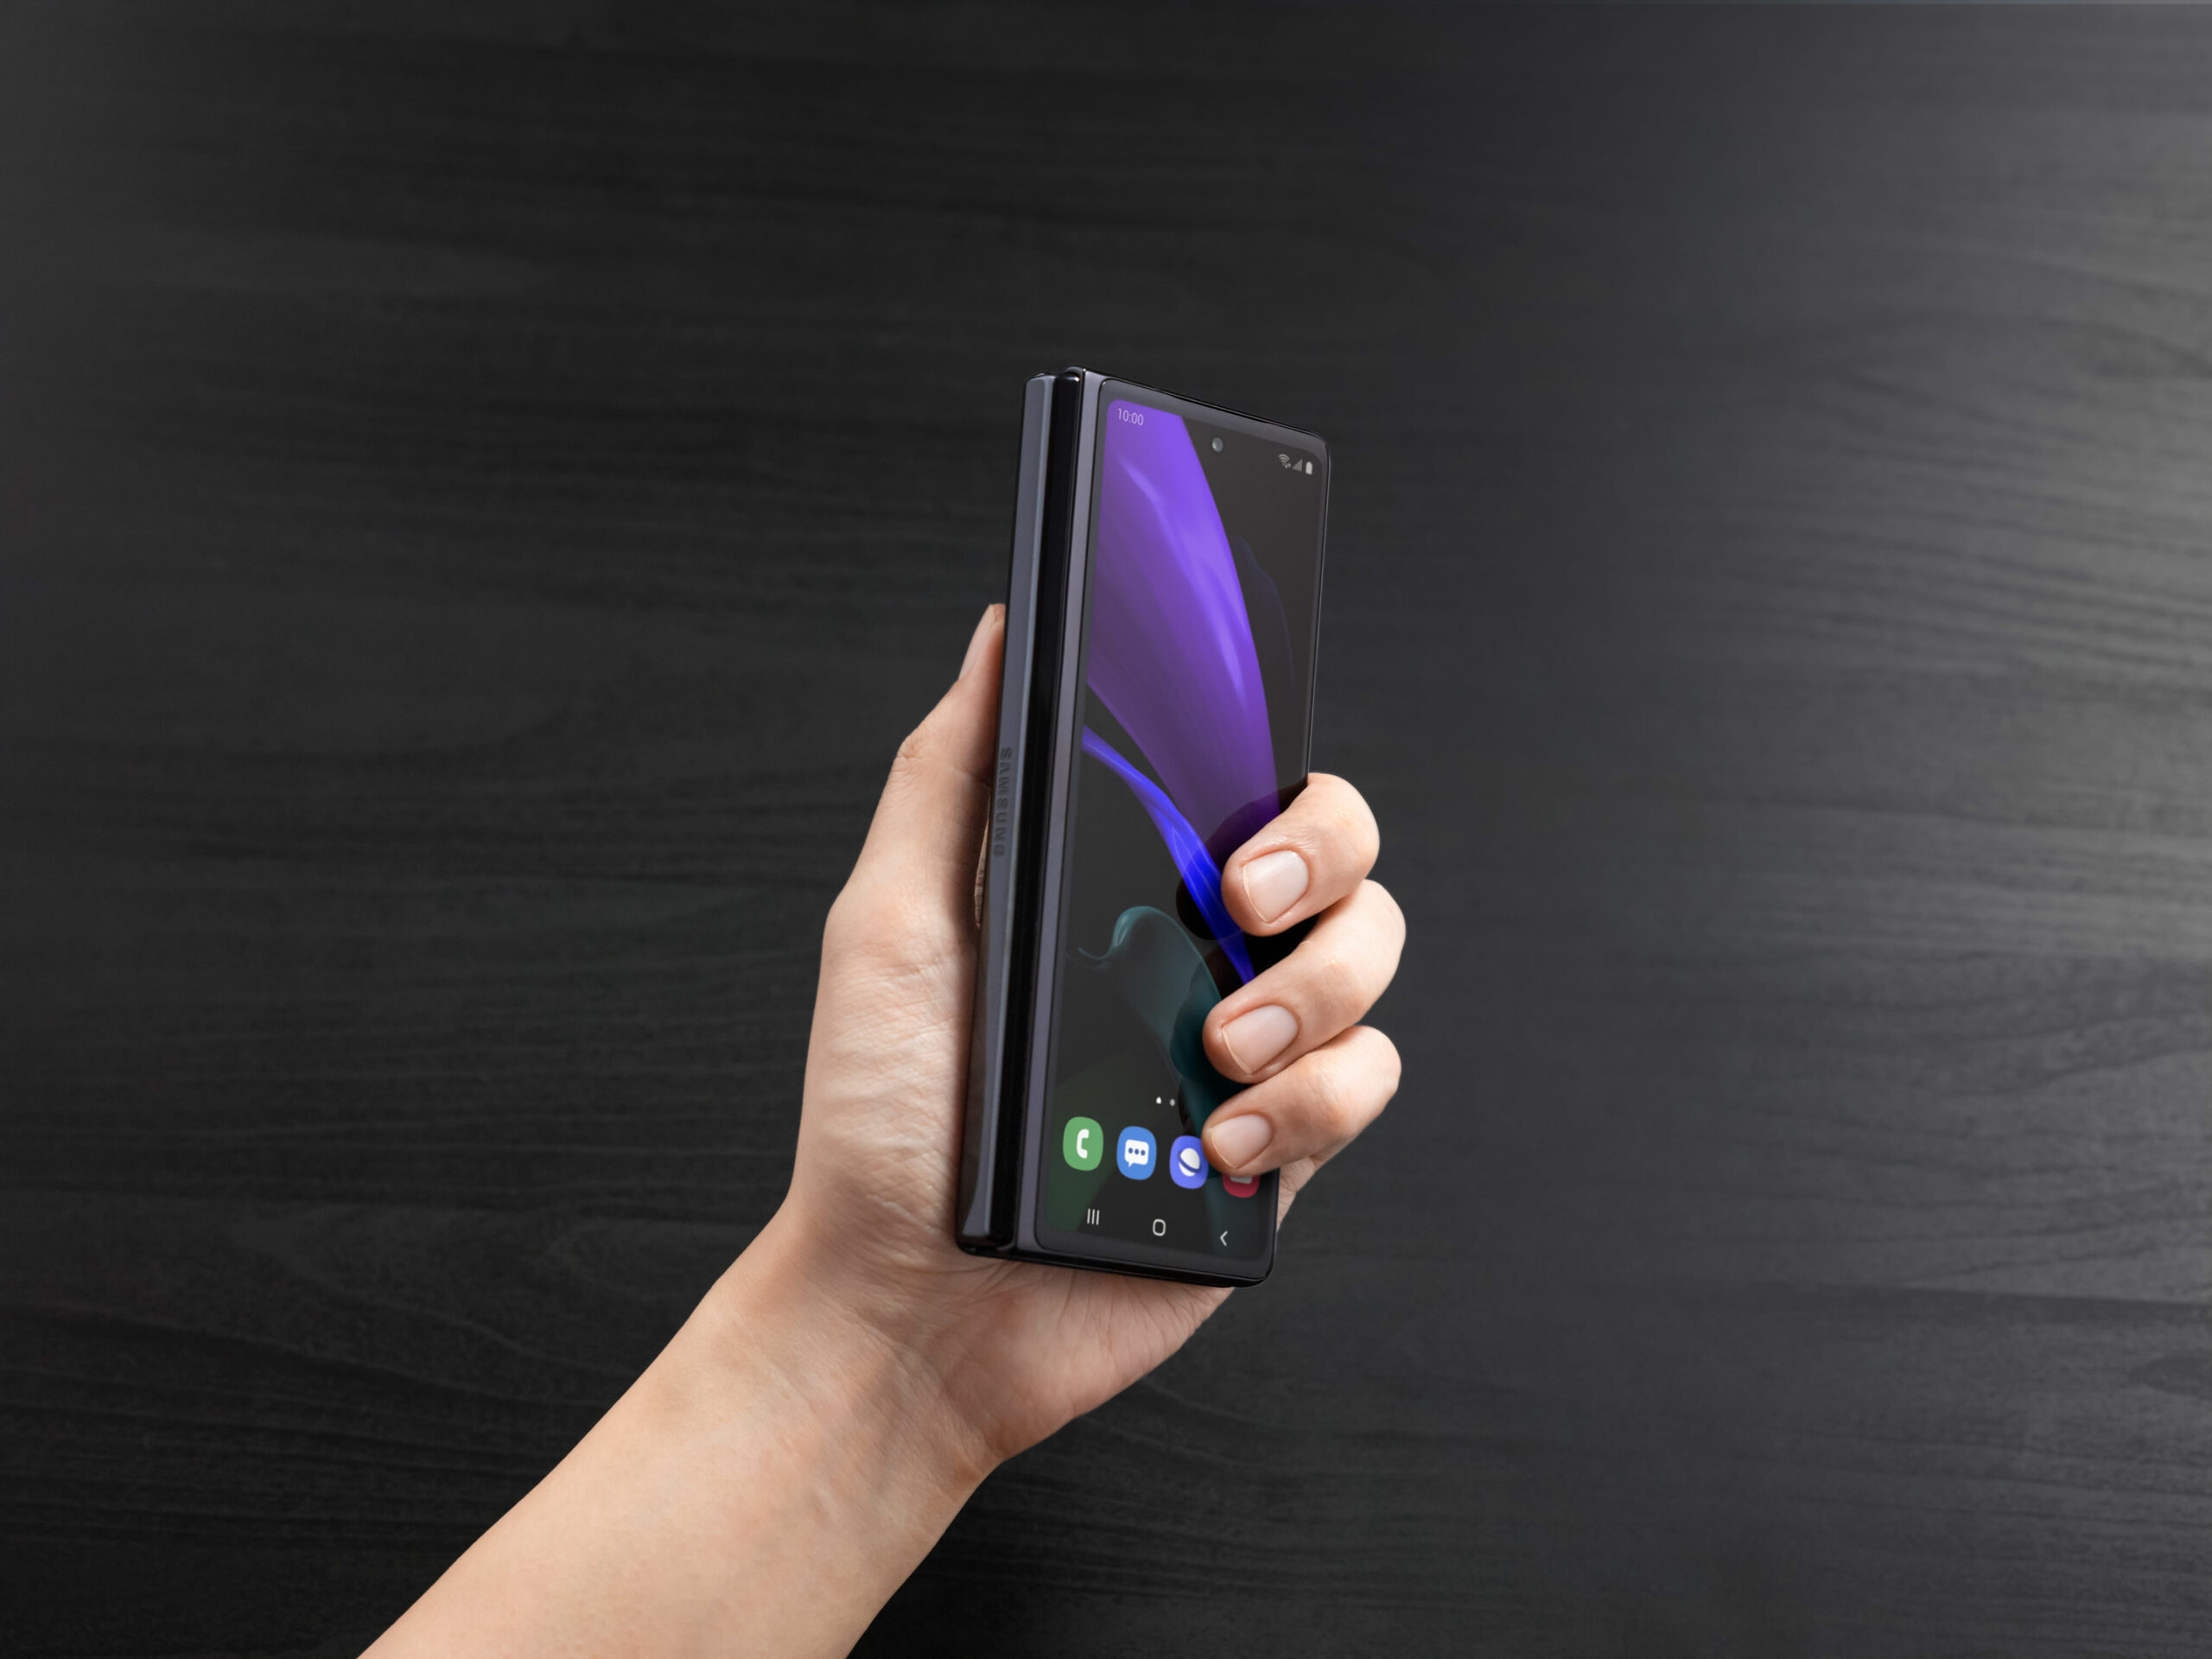 Galaxy Z Fold front display